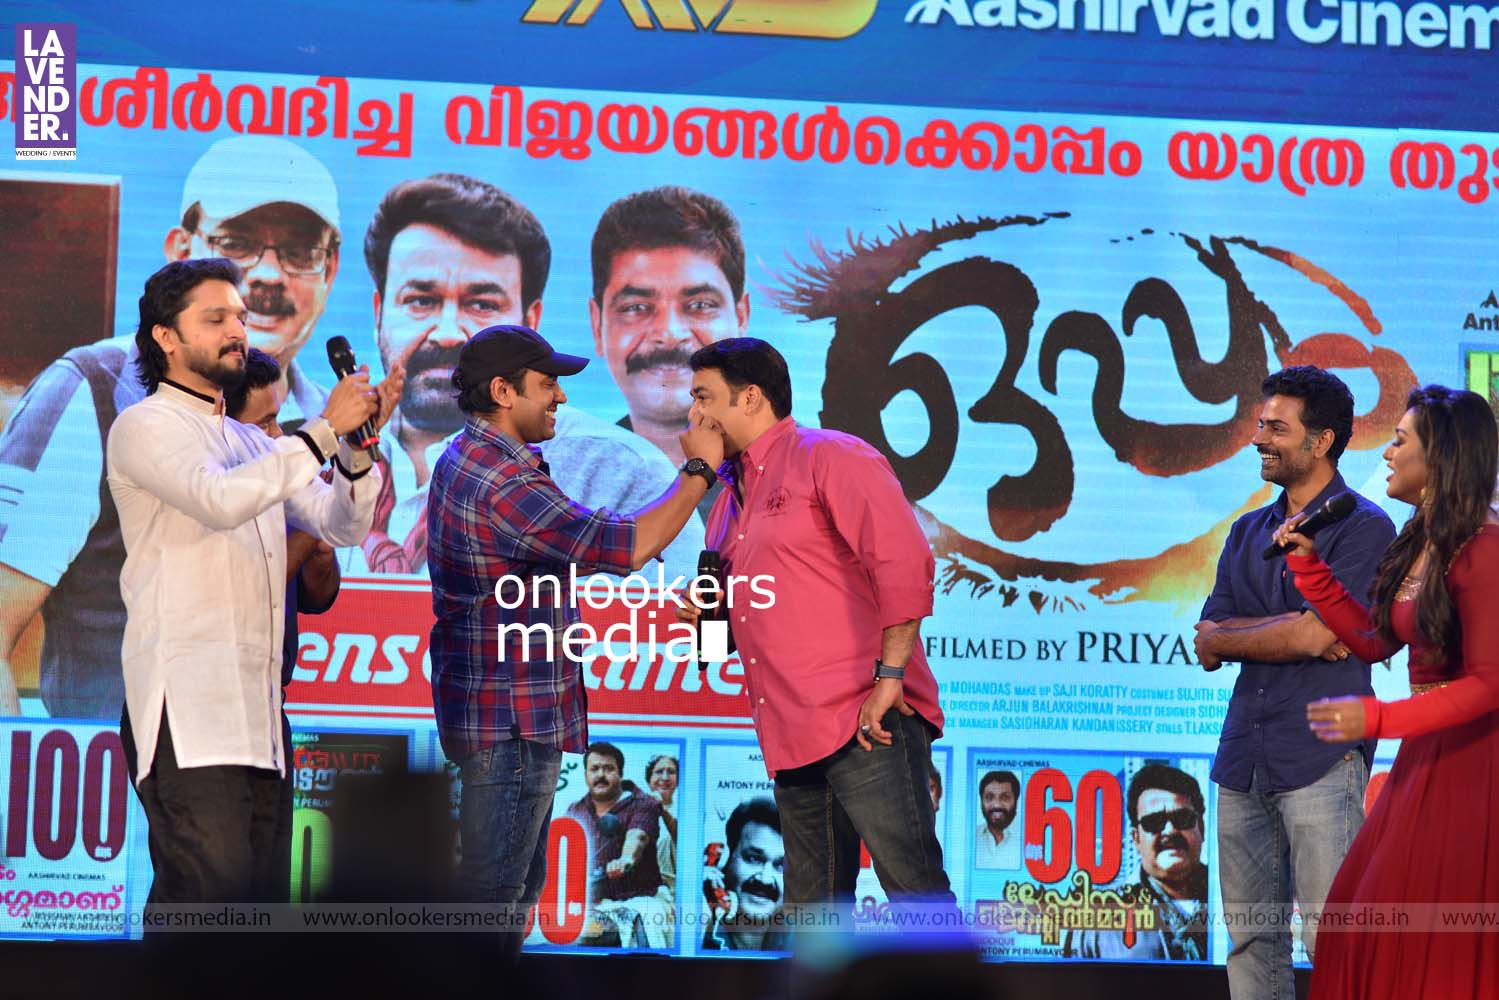 http://onlookersmedia.in/wp-content/uploads/2017/01/Oppam-100-Days-Celebration-Stills-Photos-122.jpg